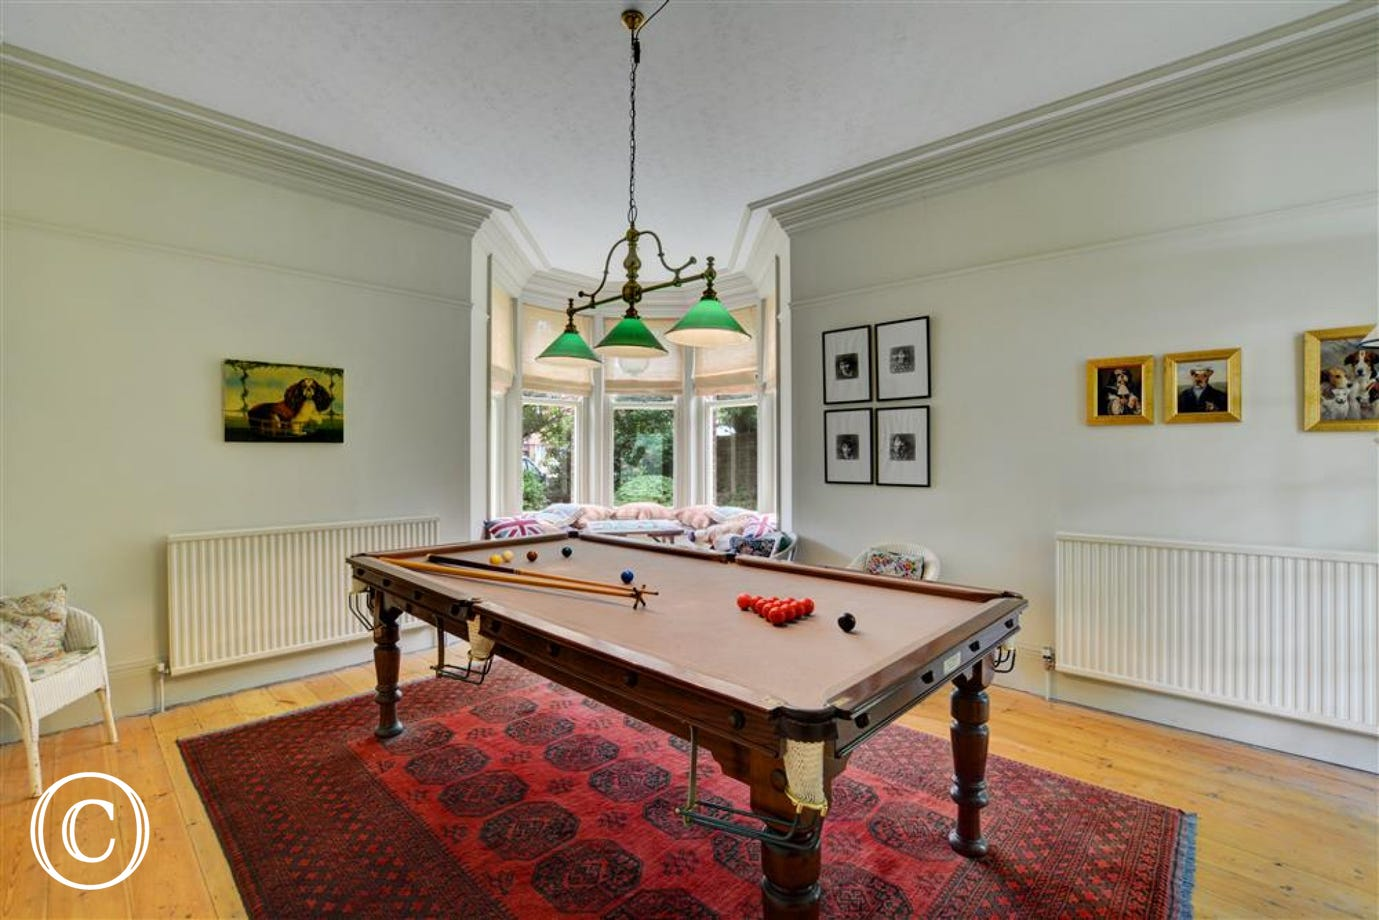 This property has the added benefit of a billiards room